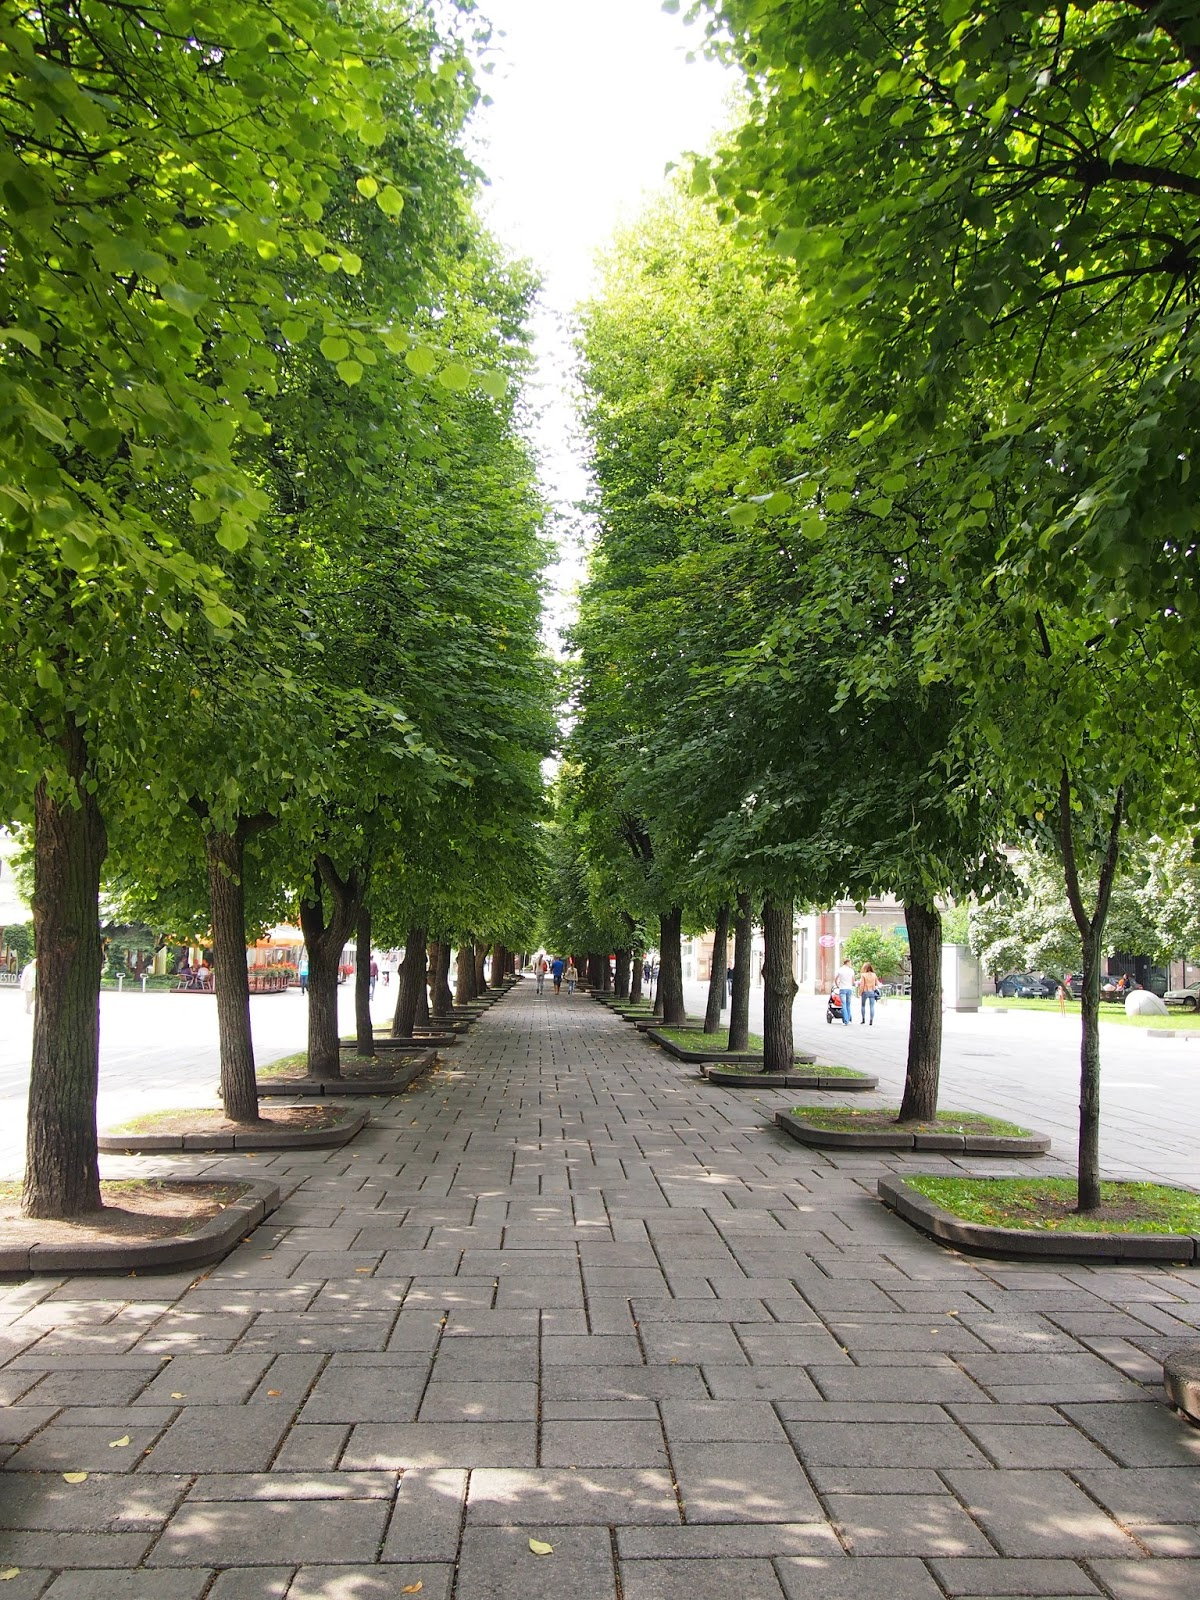 looking down the tree lined streets in Laisves Avenue in Kaunas, Lithuania